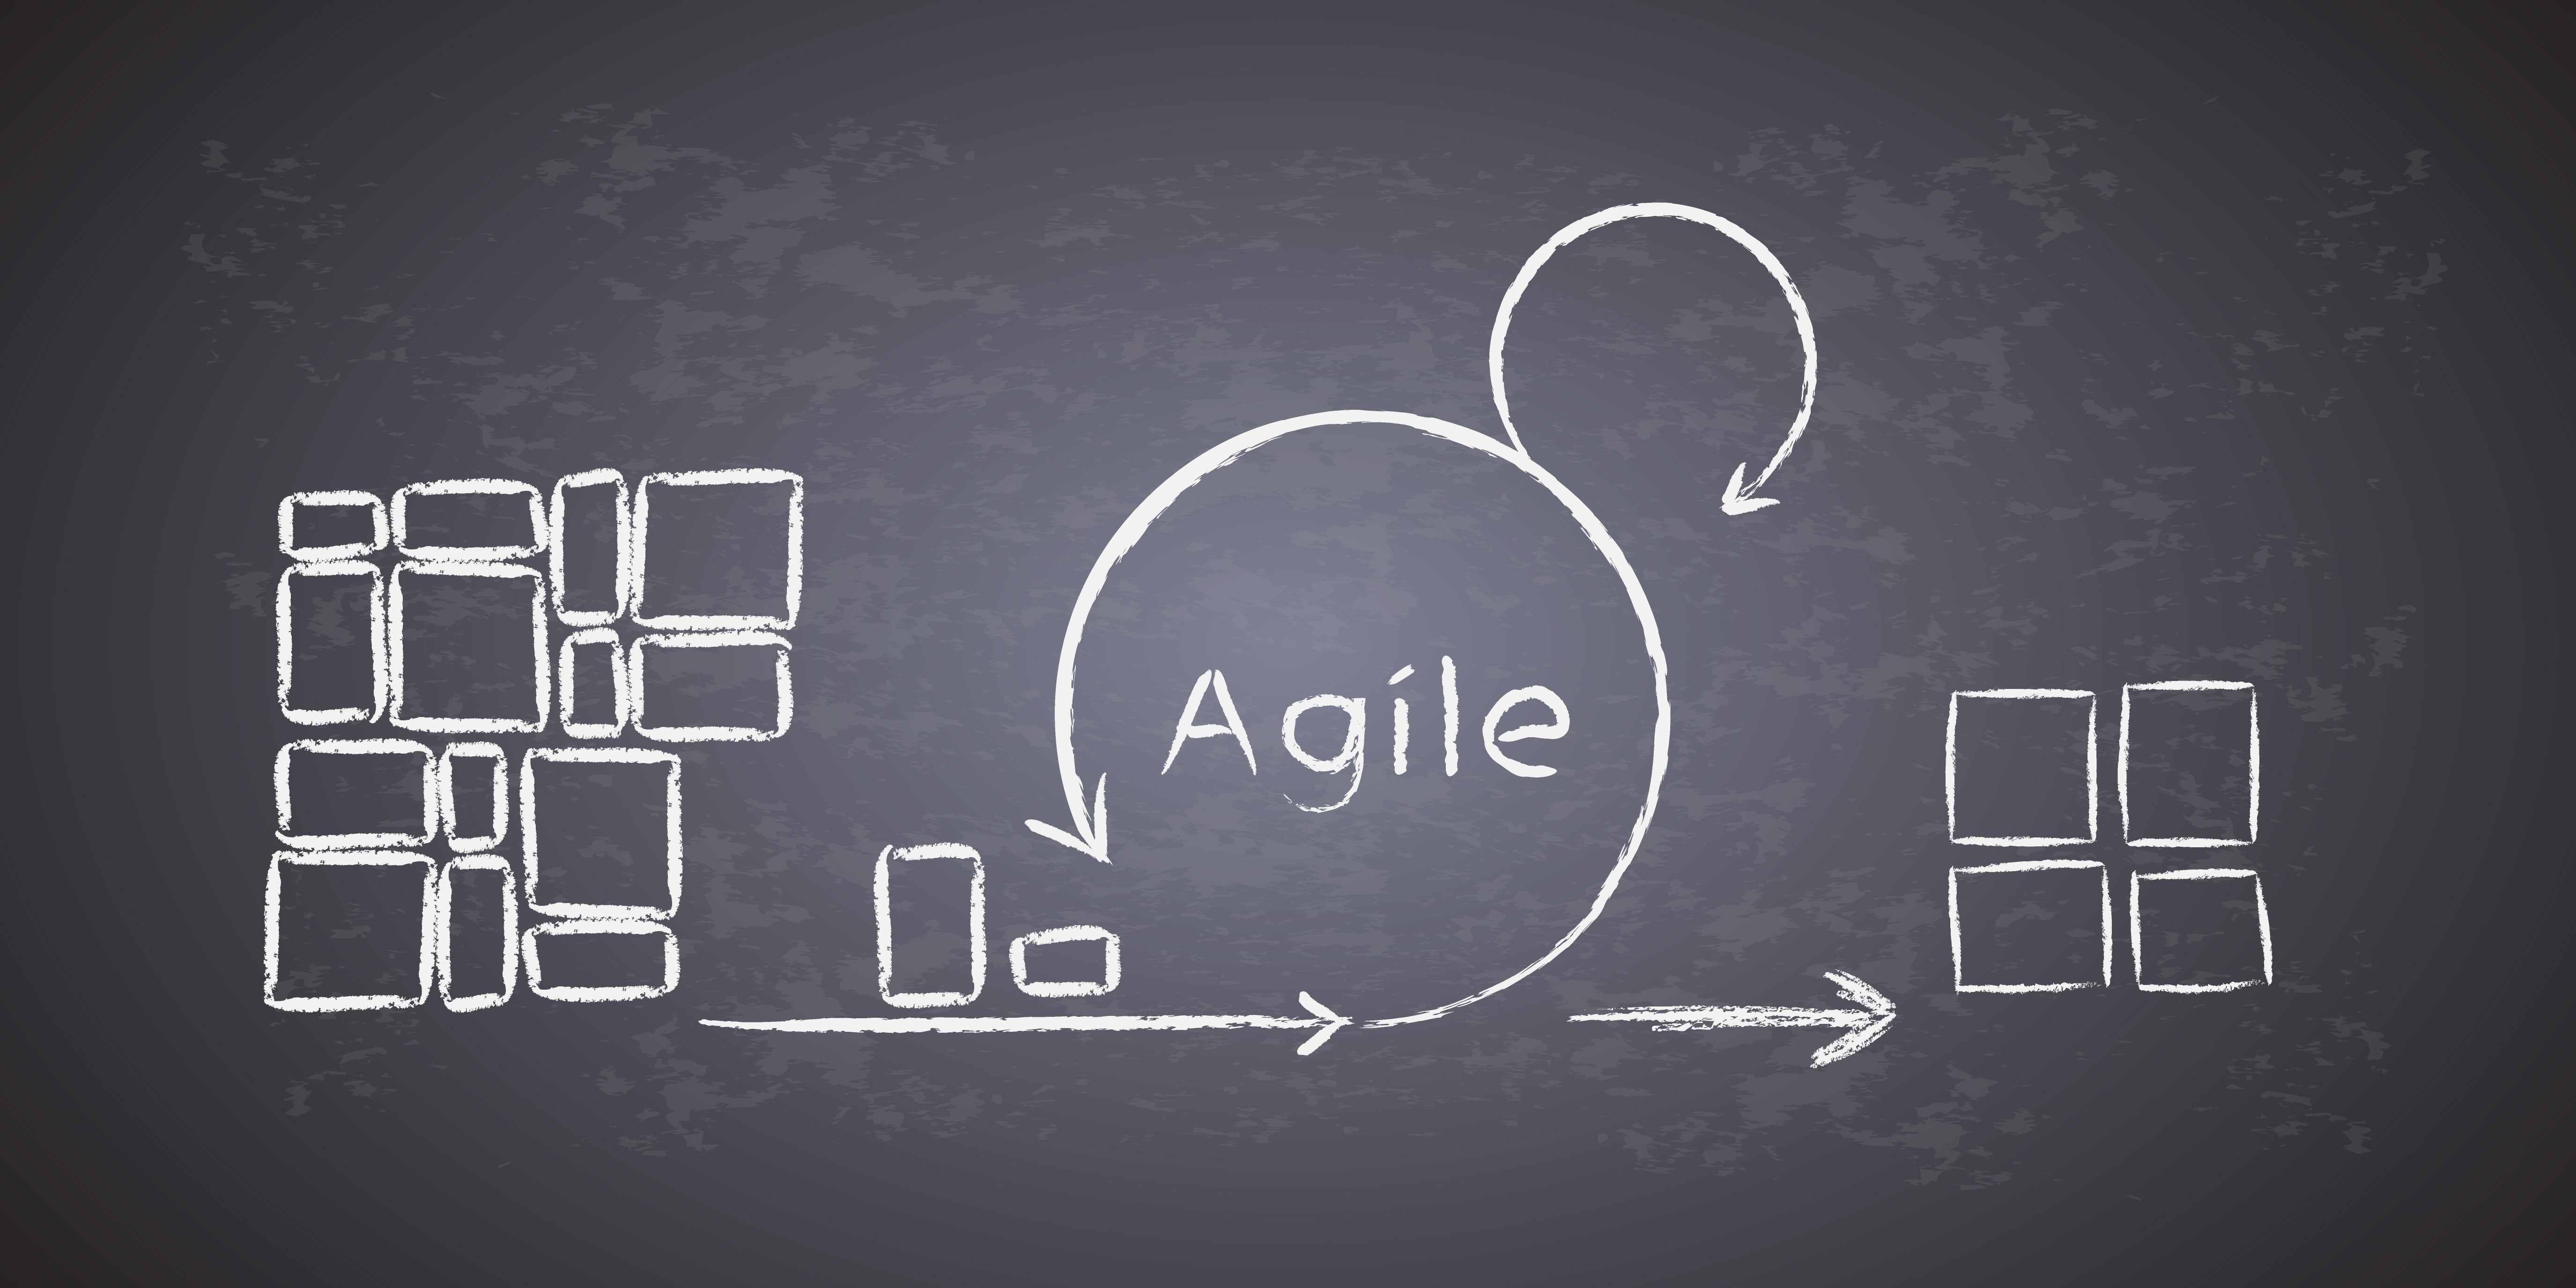 check the post:How to Prioritize Agile Backlog for a description of the image